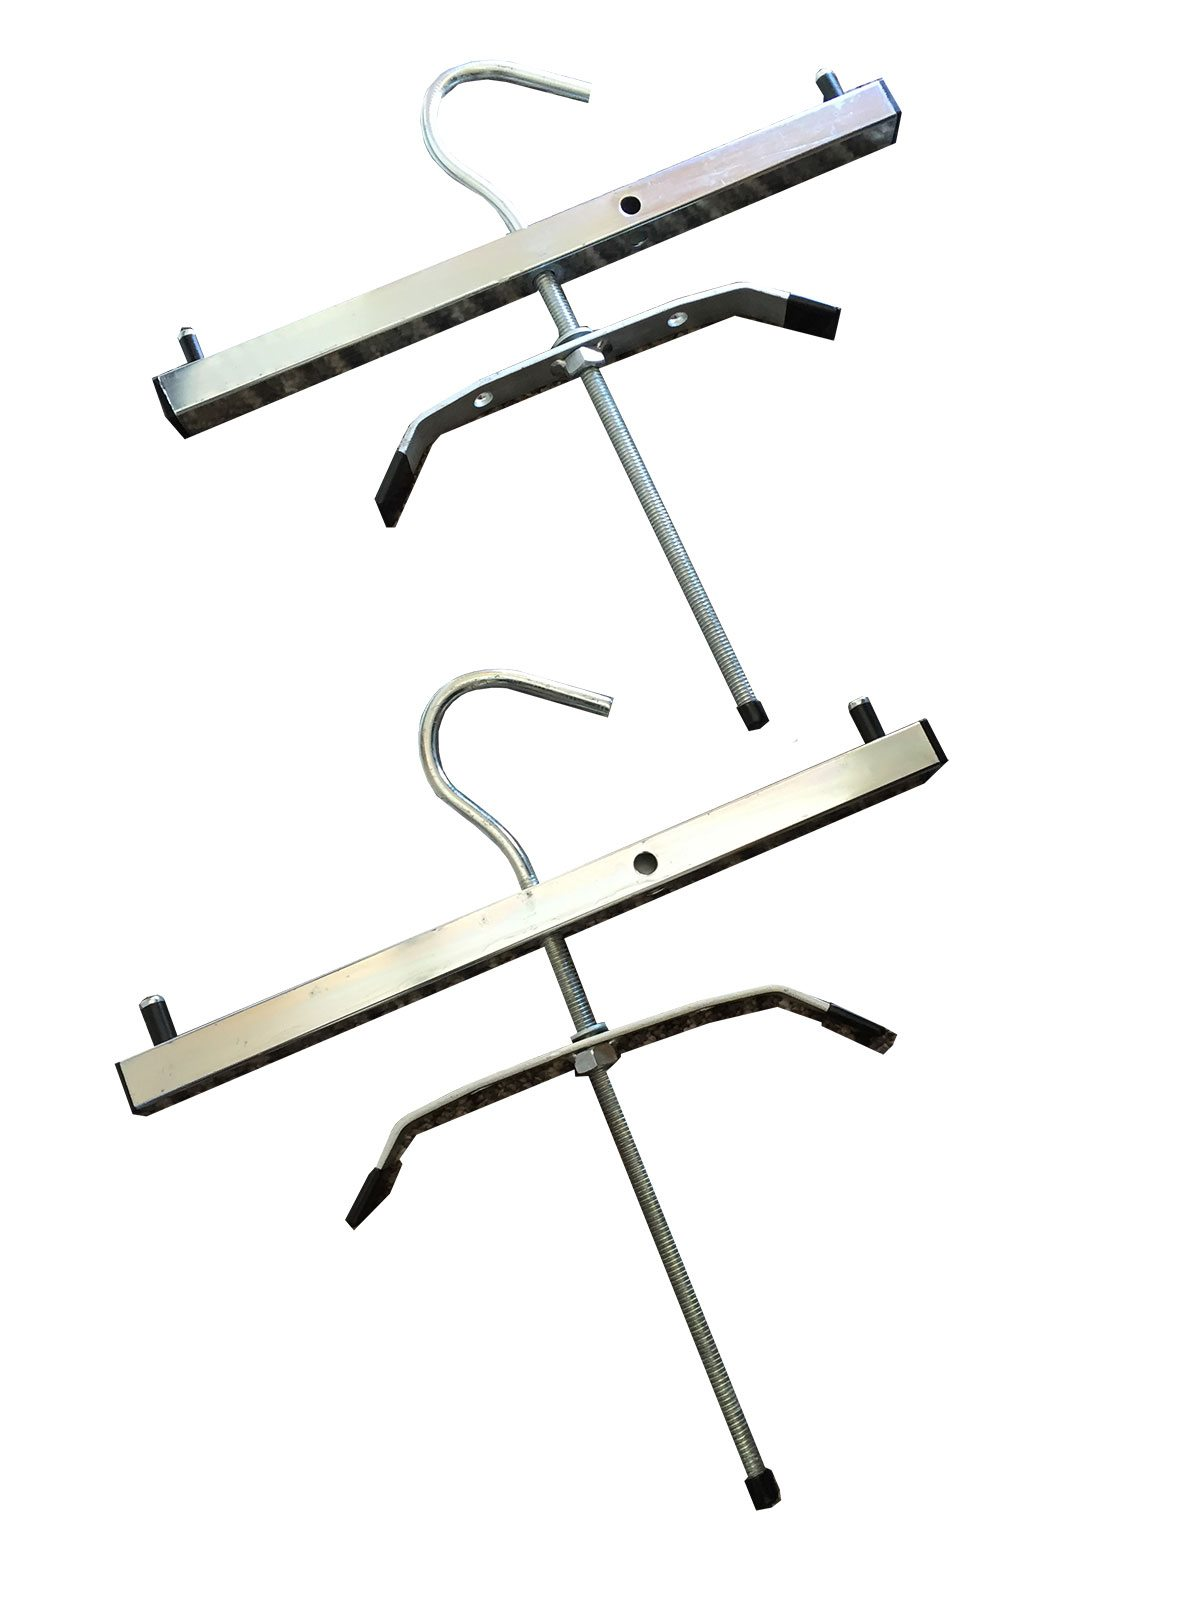 Chase Ladders Roof Rack Clamps